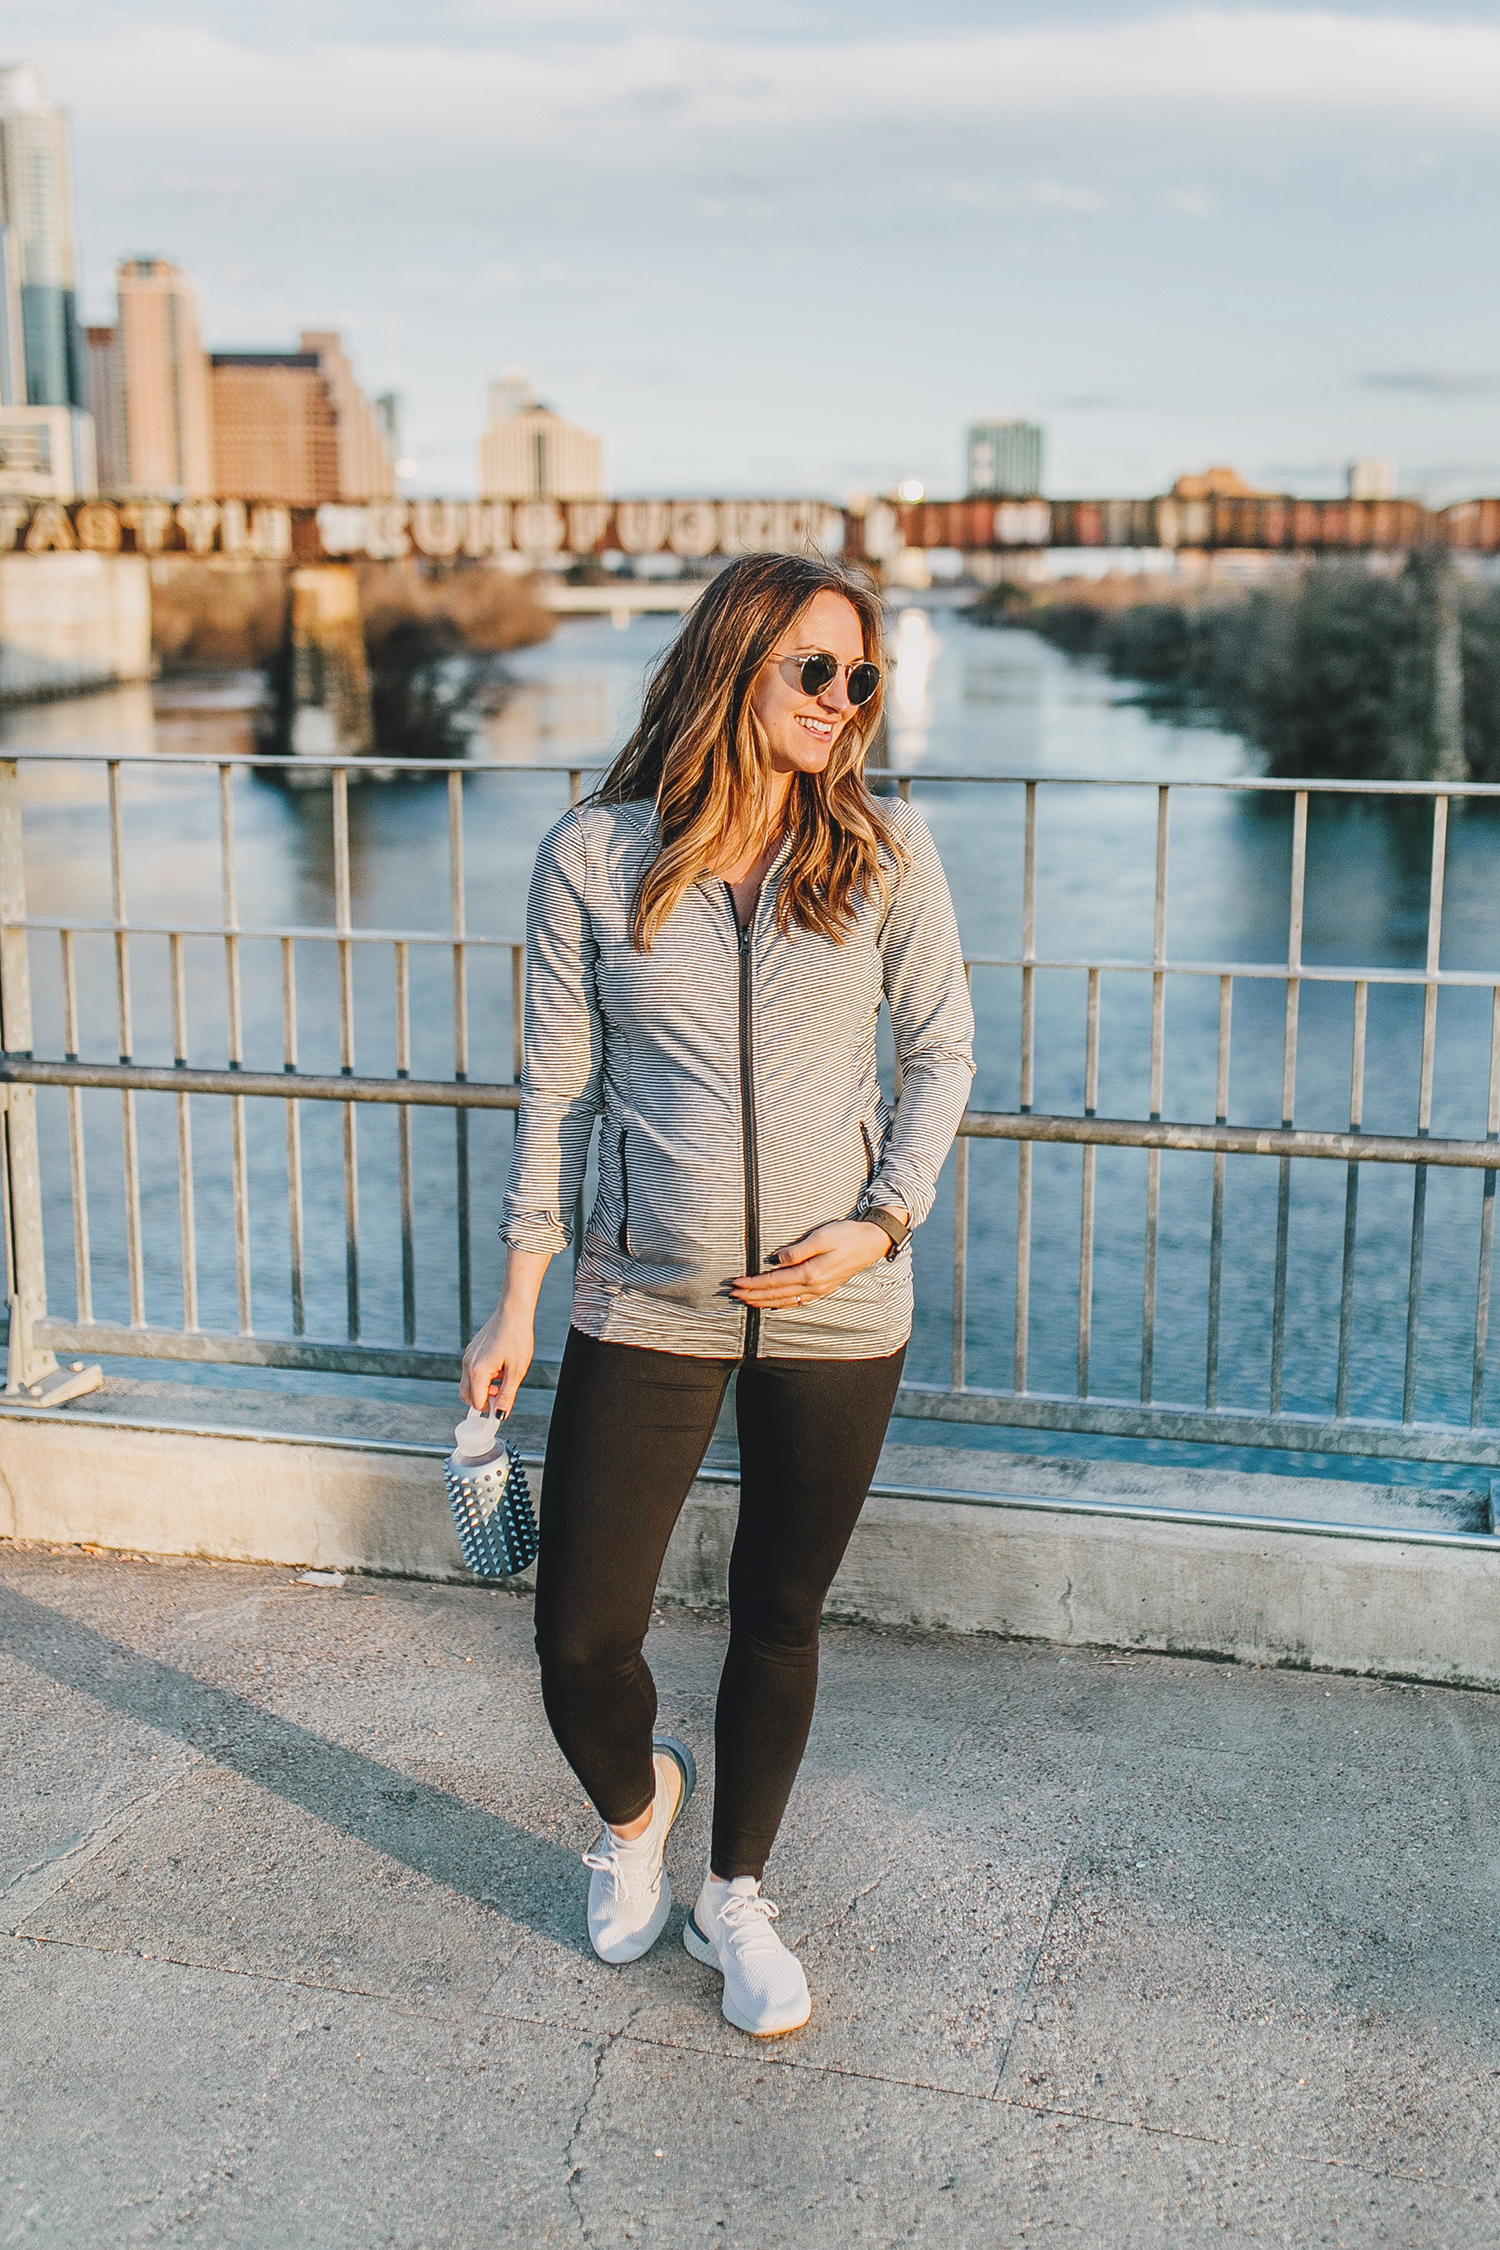 livvyland-blog-olivia-watson-austin-texas-lamar-bridge-maternity-pregnancy-workout-outfit-leggings-nordstrom-1